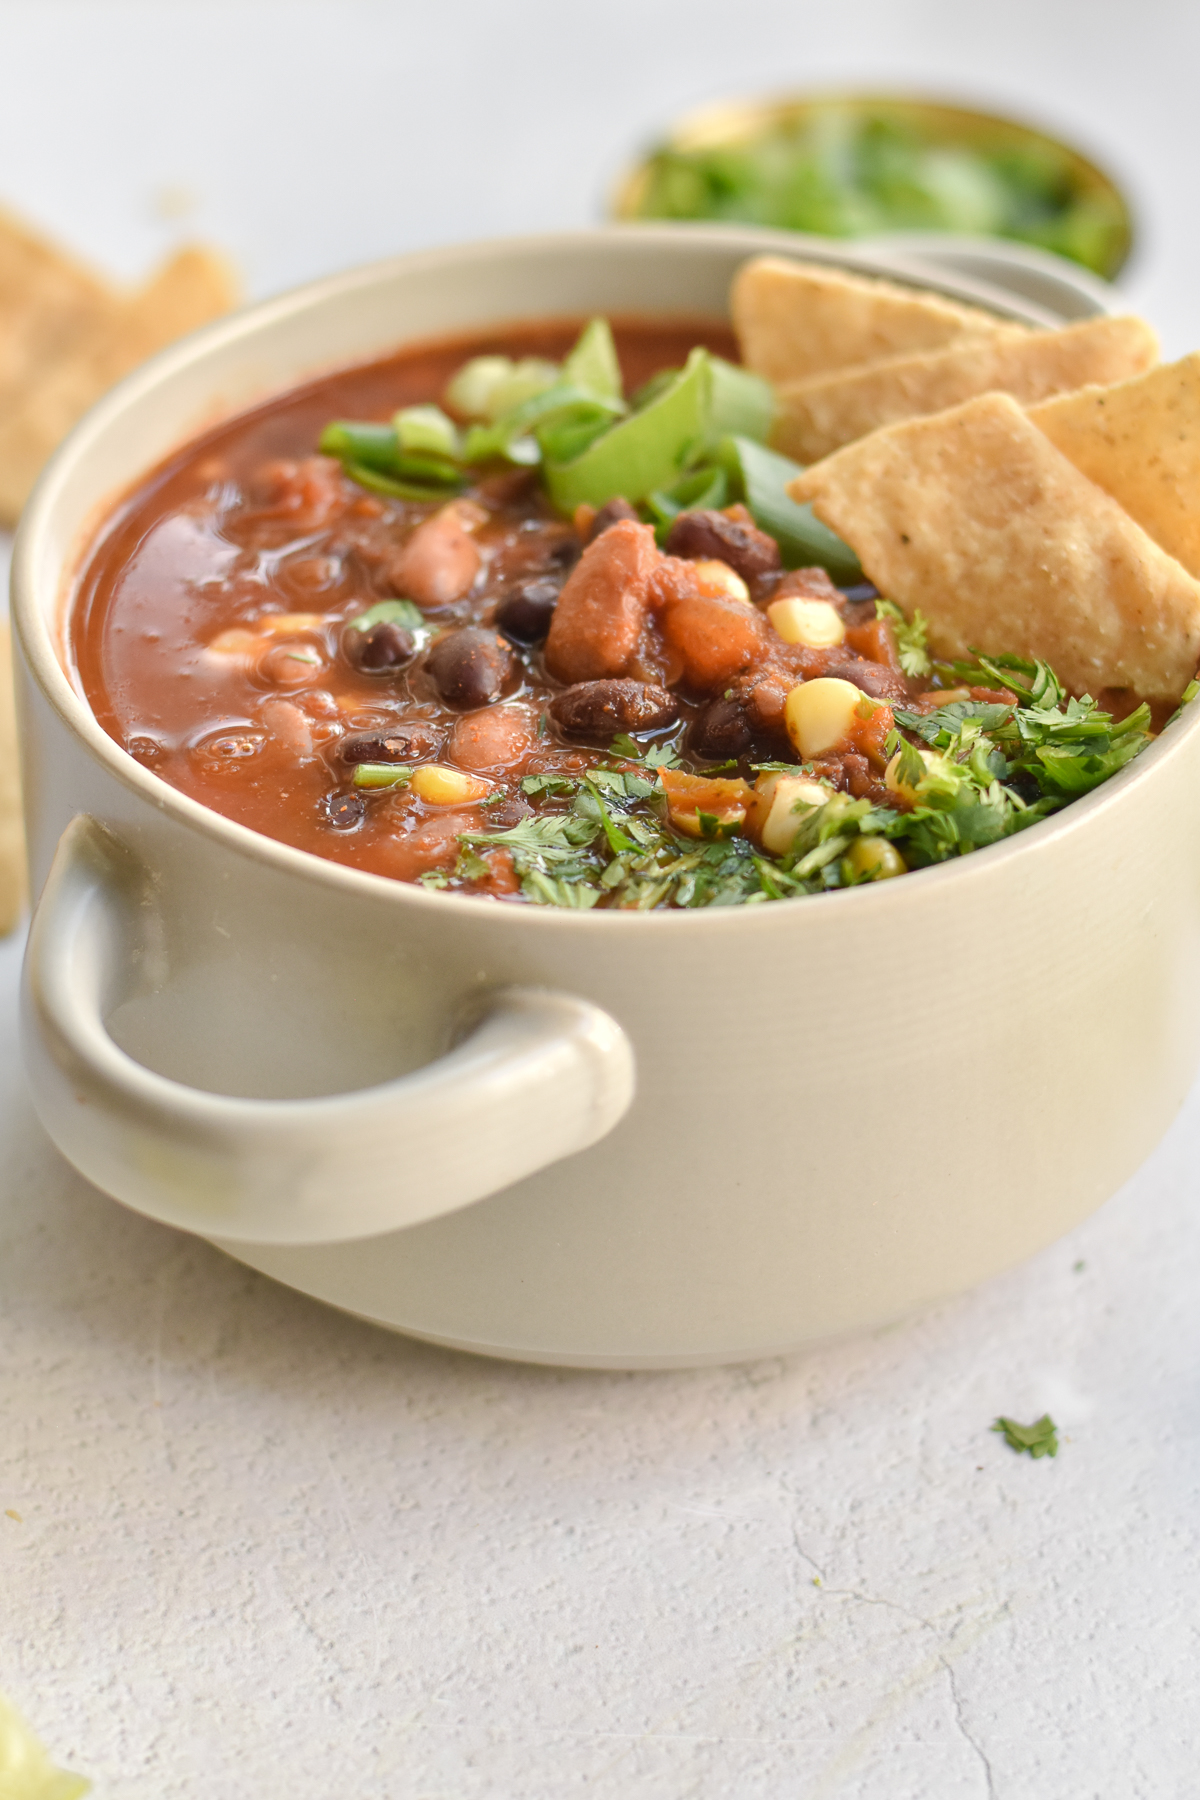 This Slow Cooker Vegan Taco Soup couldn't be any easier. Simply, add all the ingredients to the crockpot and let it do all the work for you.